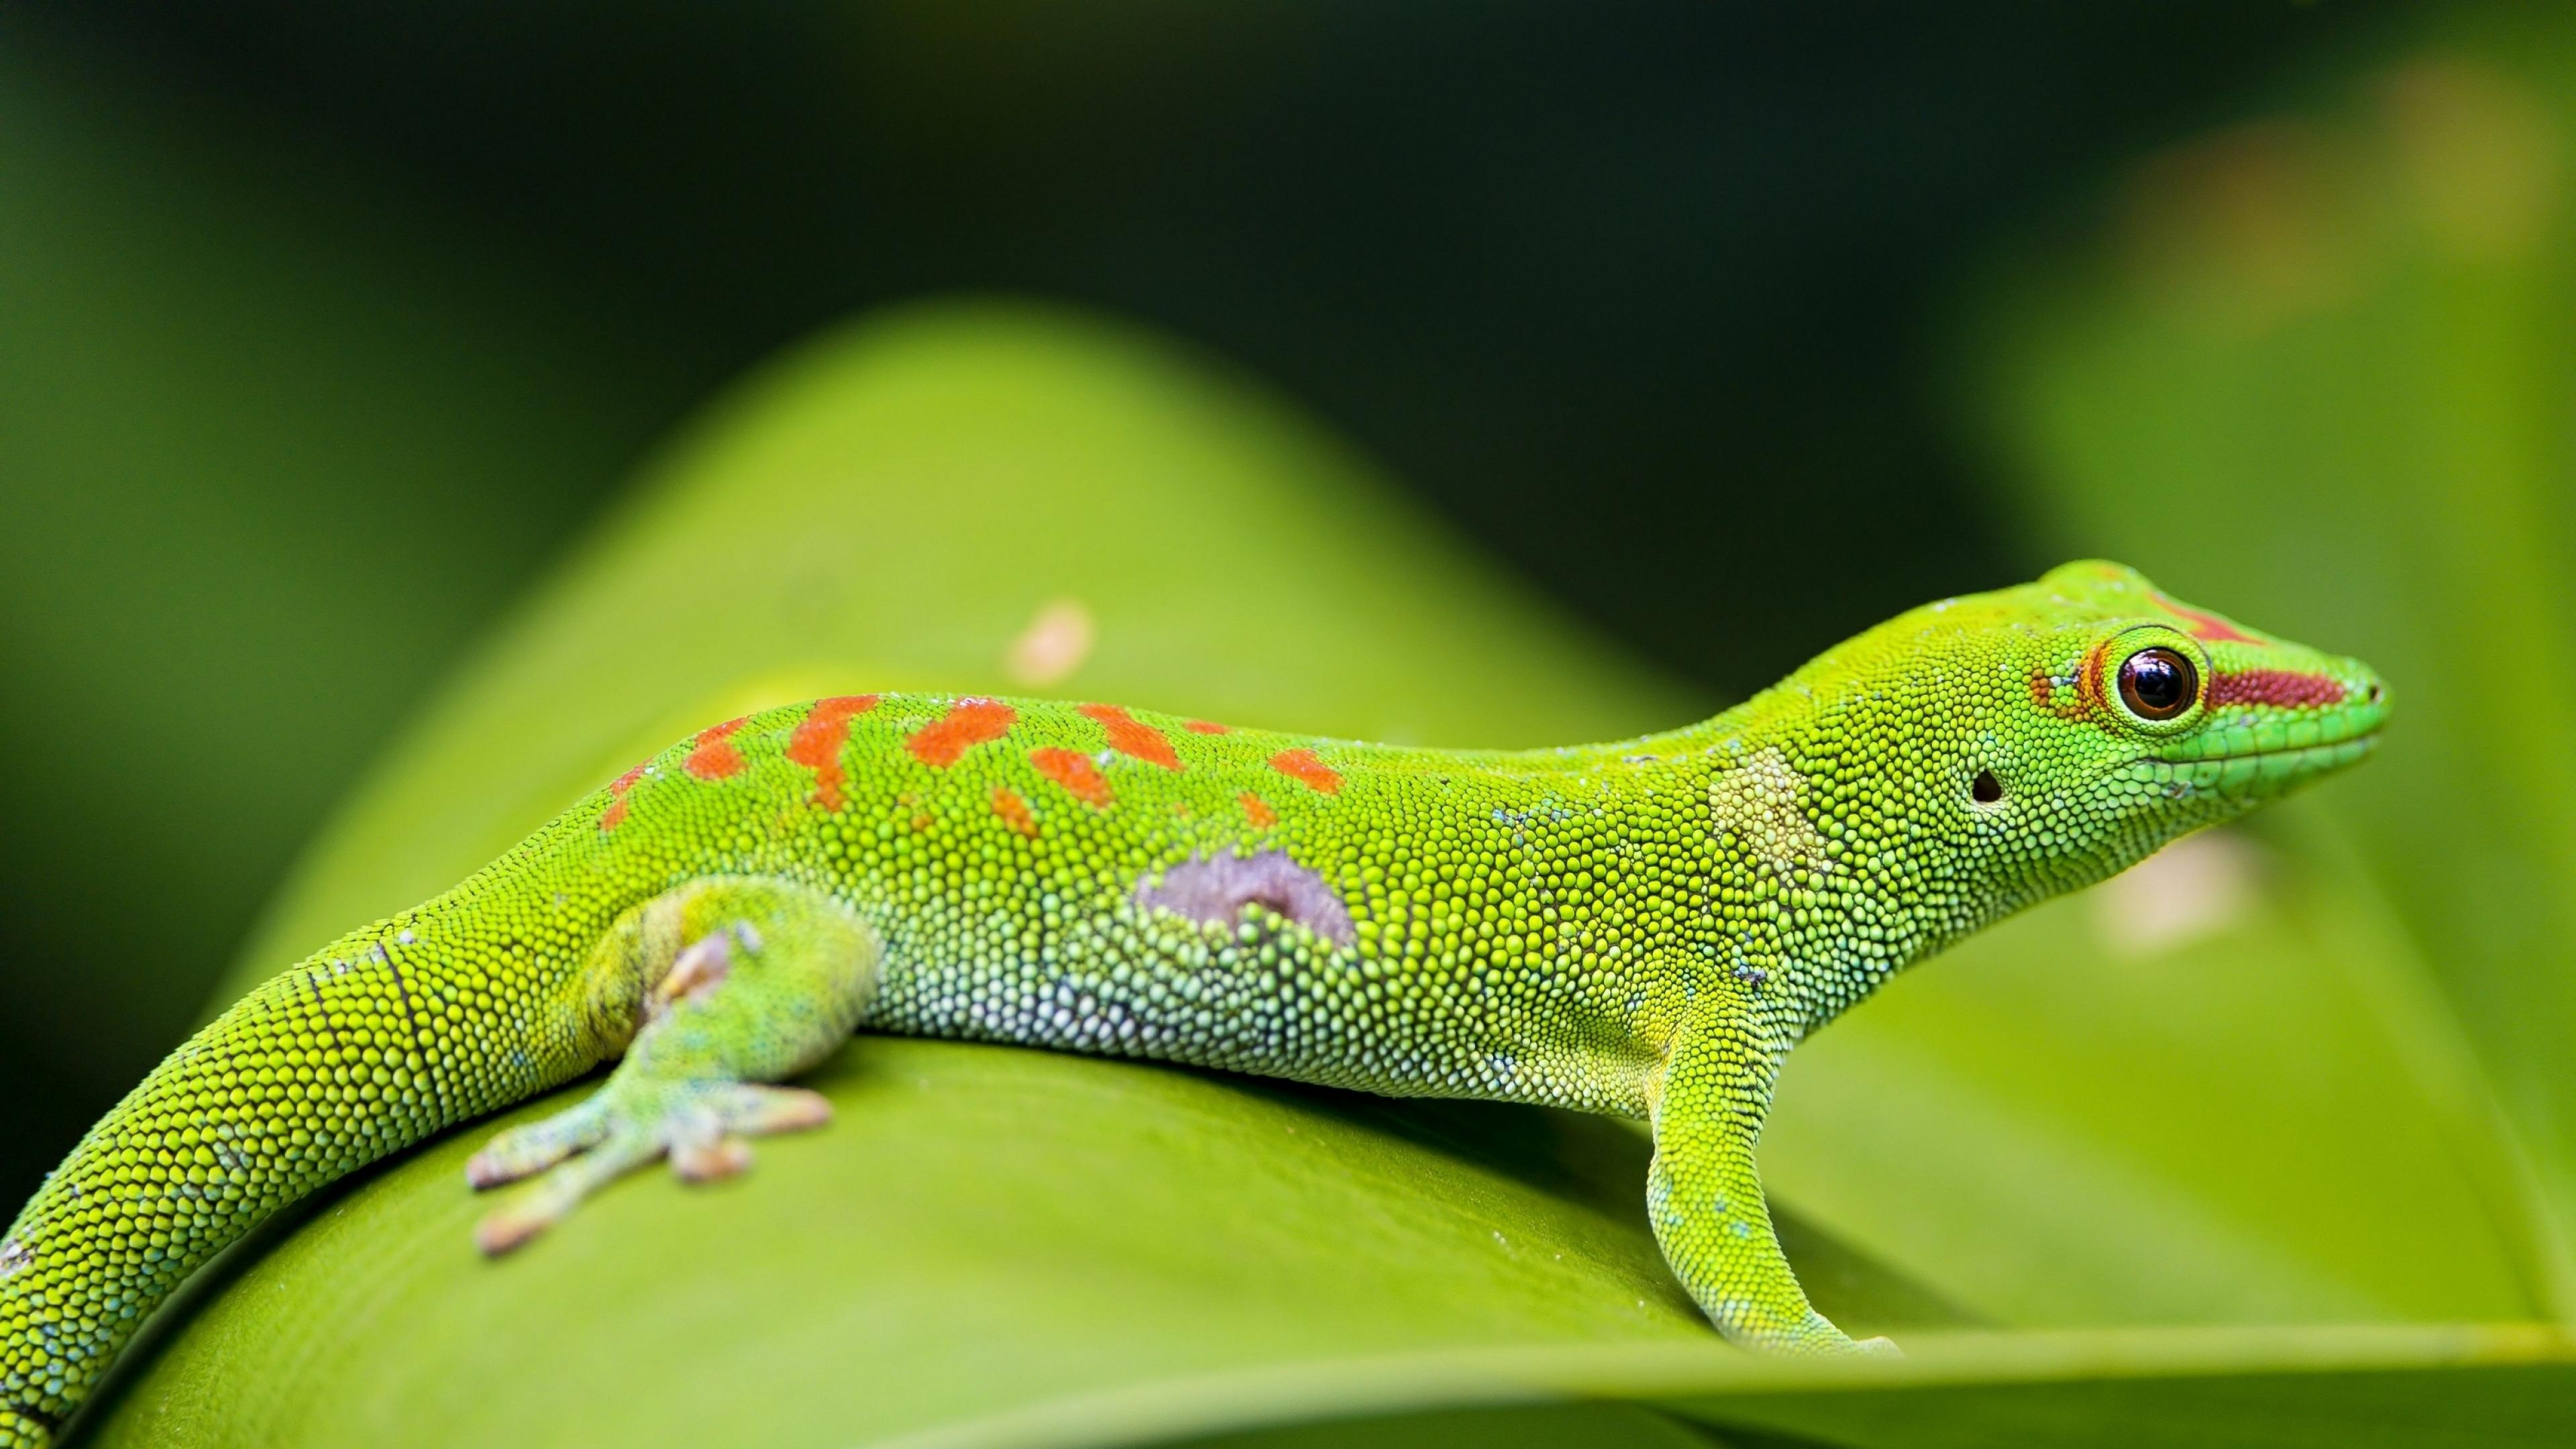 Madagascar Day Gecko 4K UltraHD Wallpapers